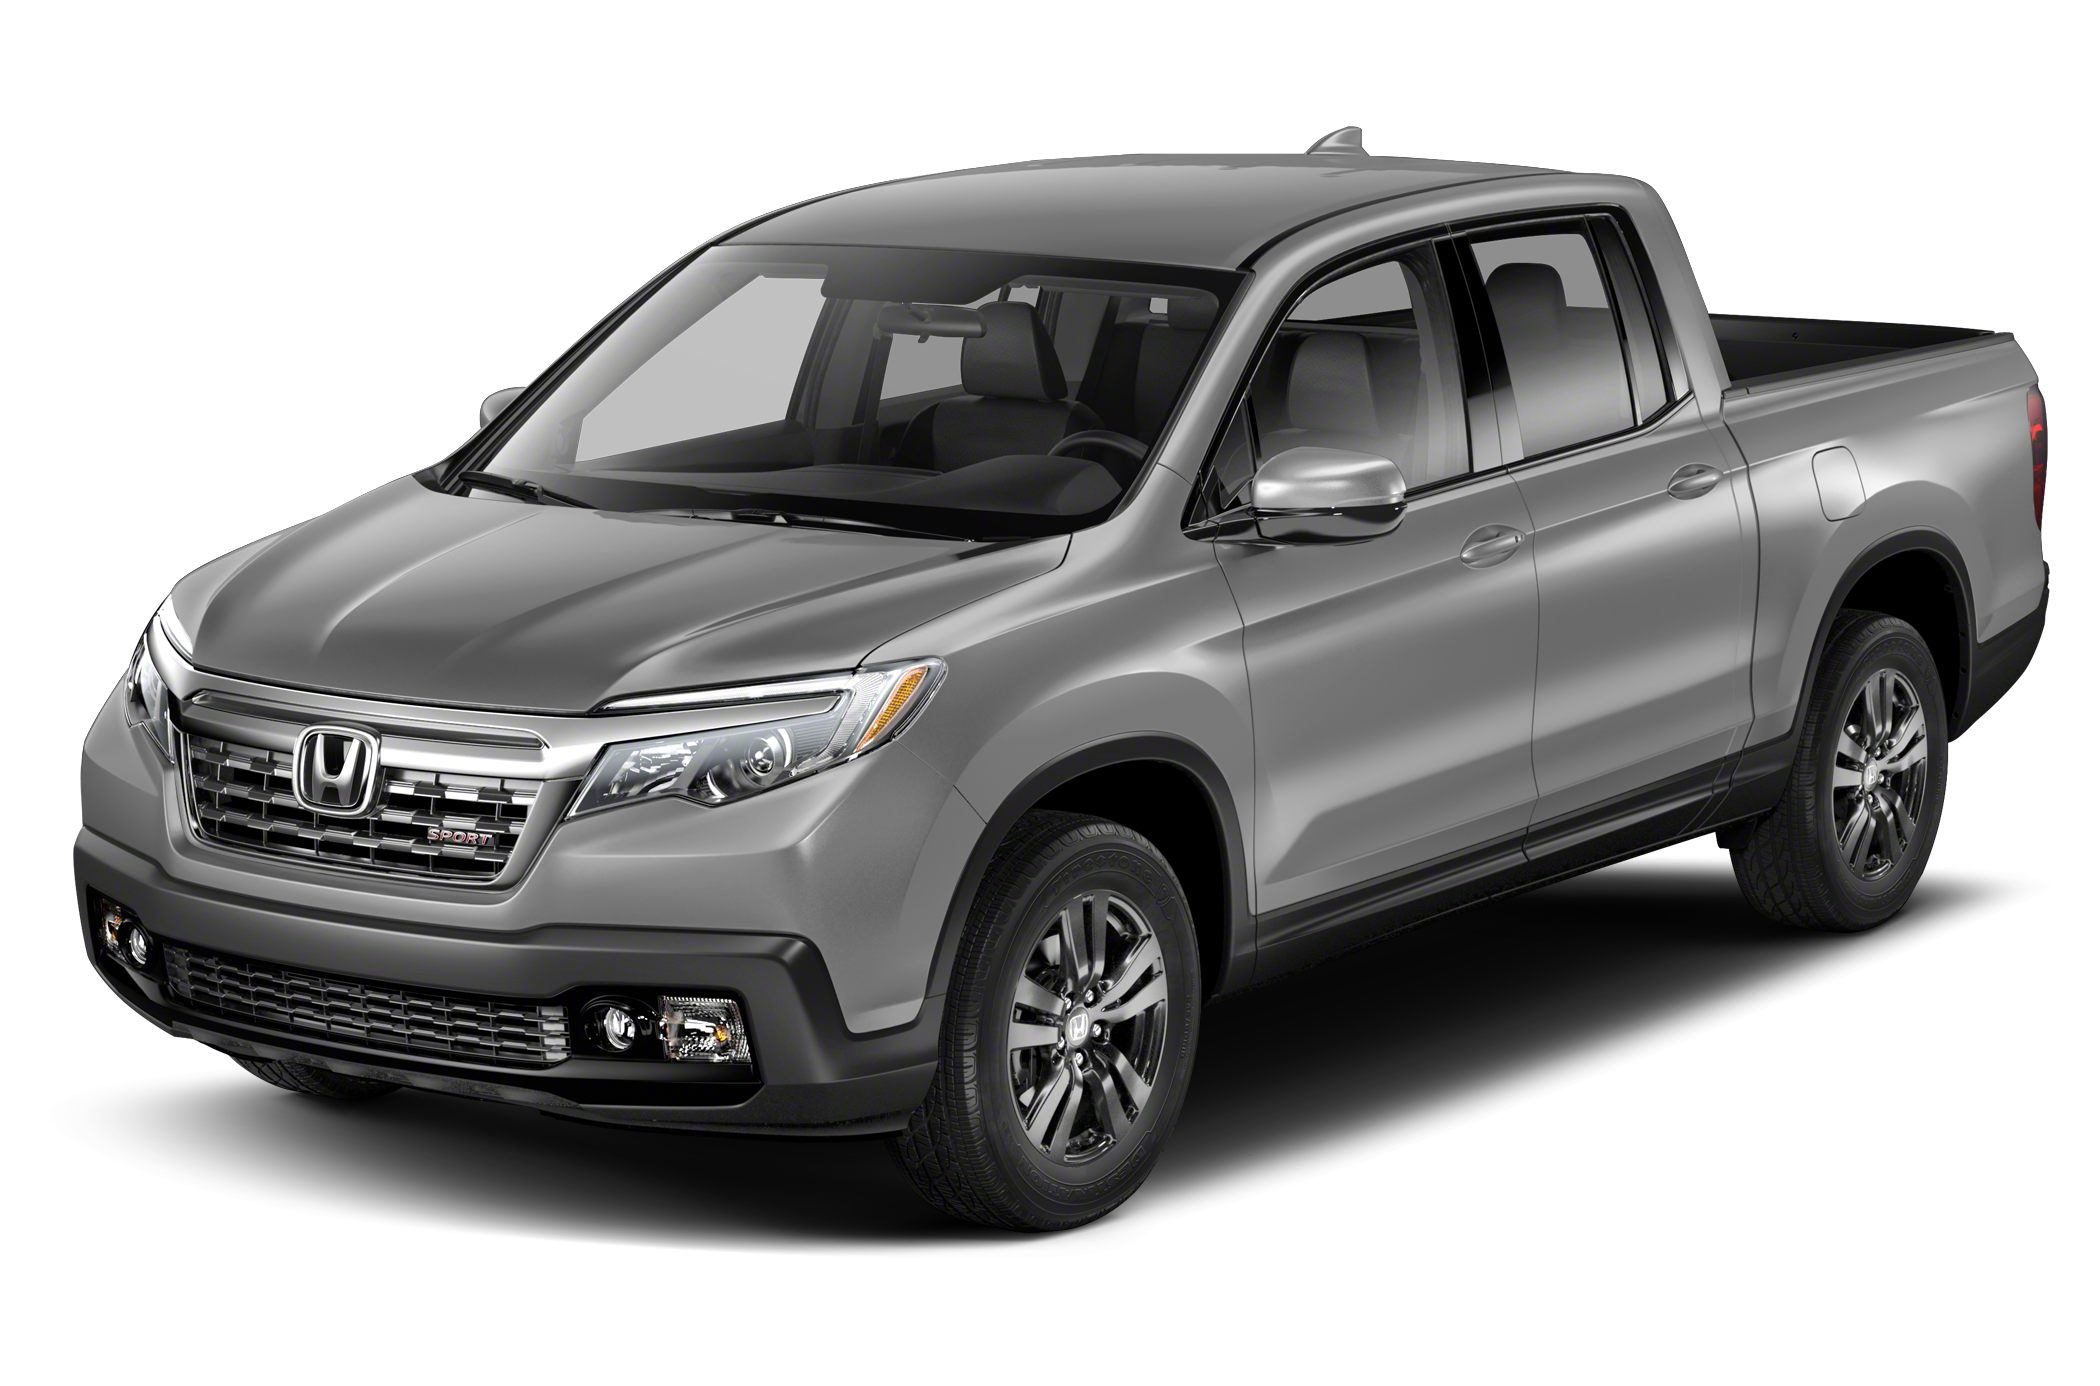 2018 Honda Ridgeline Deals, Prices, Incentives & Leases, Overview - CarsDirect